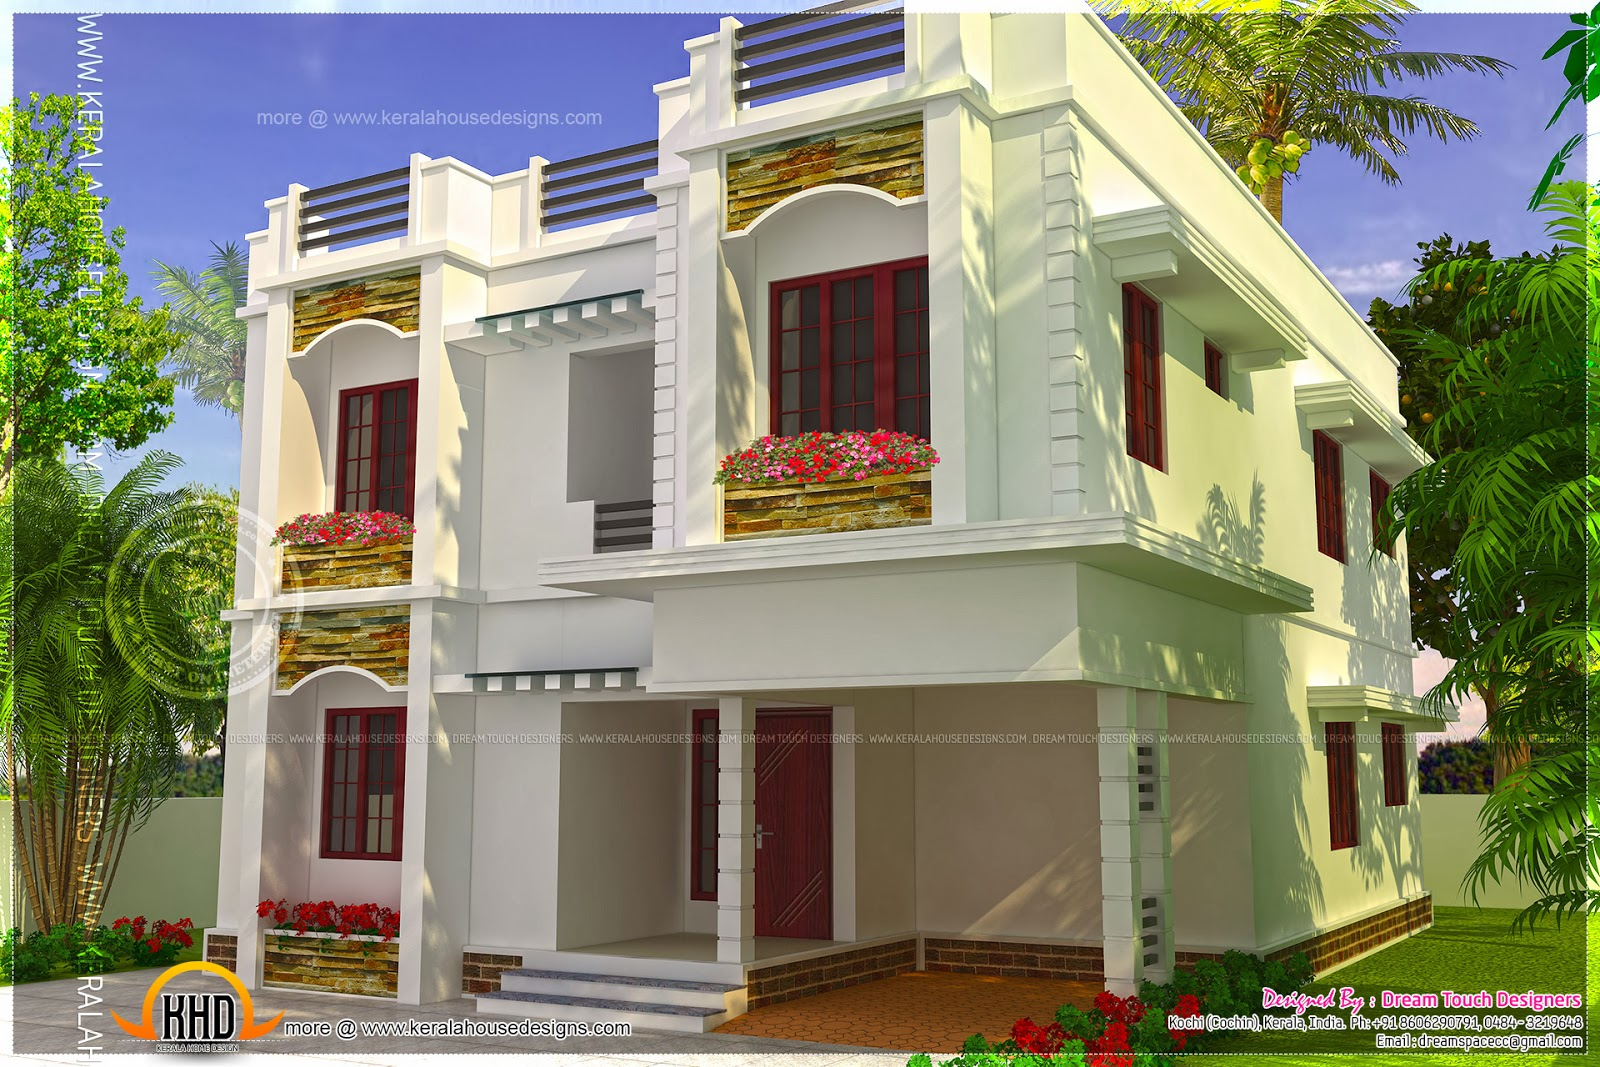 4 bedroom modern villa in 232 square meter kerala home for 4 bedroom villa designs